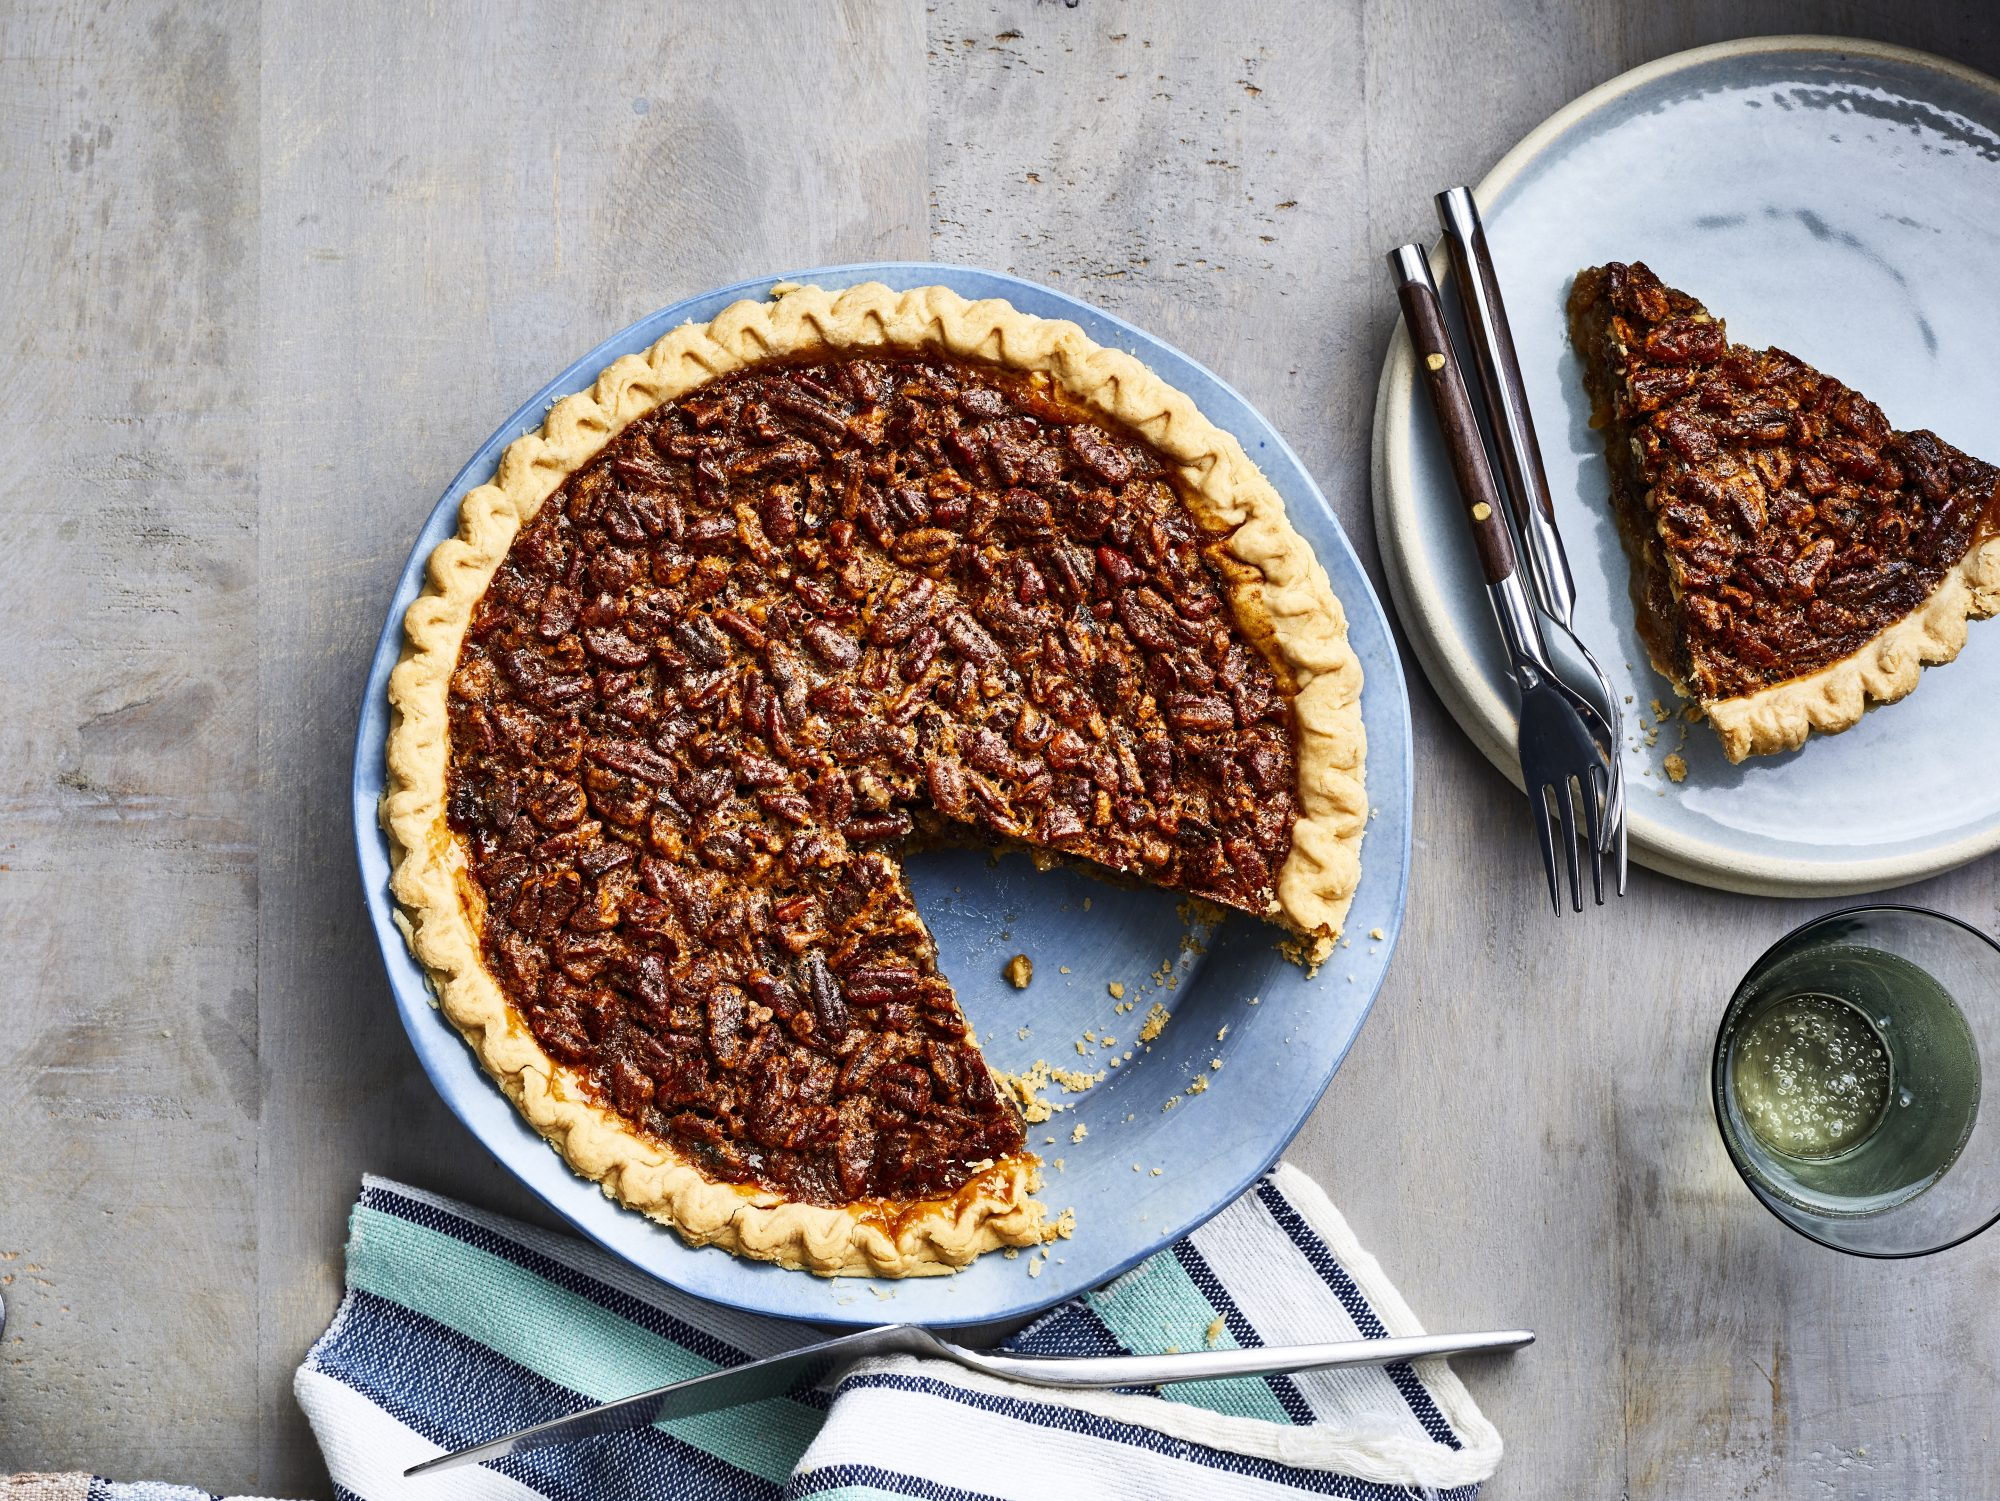 mr- mom's pecan pie reshoot